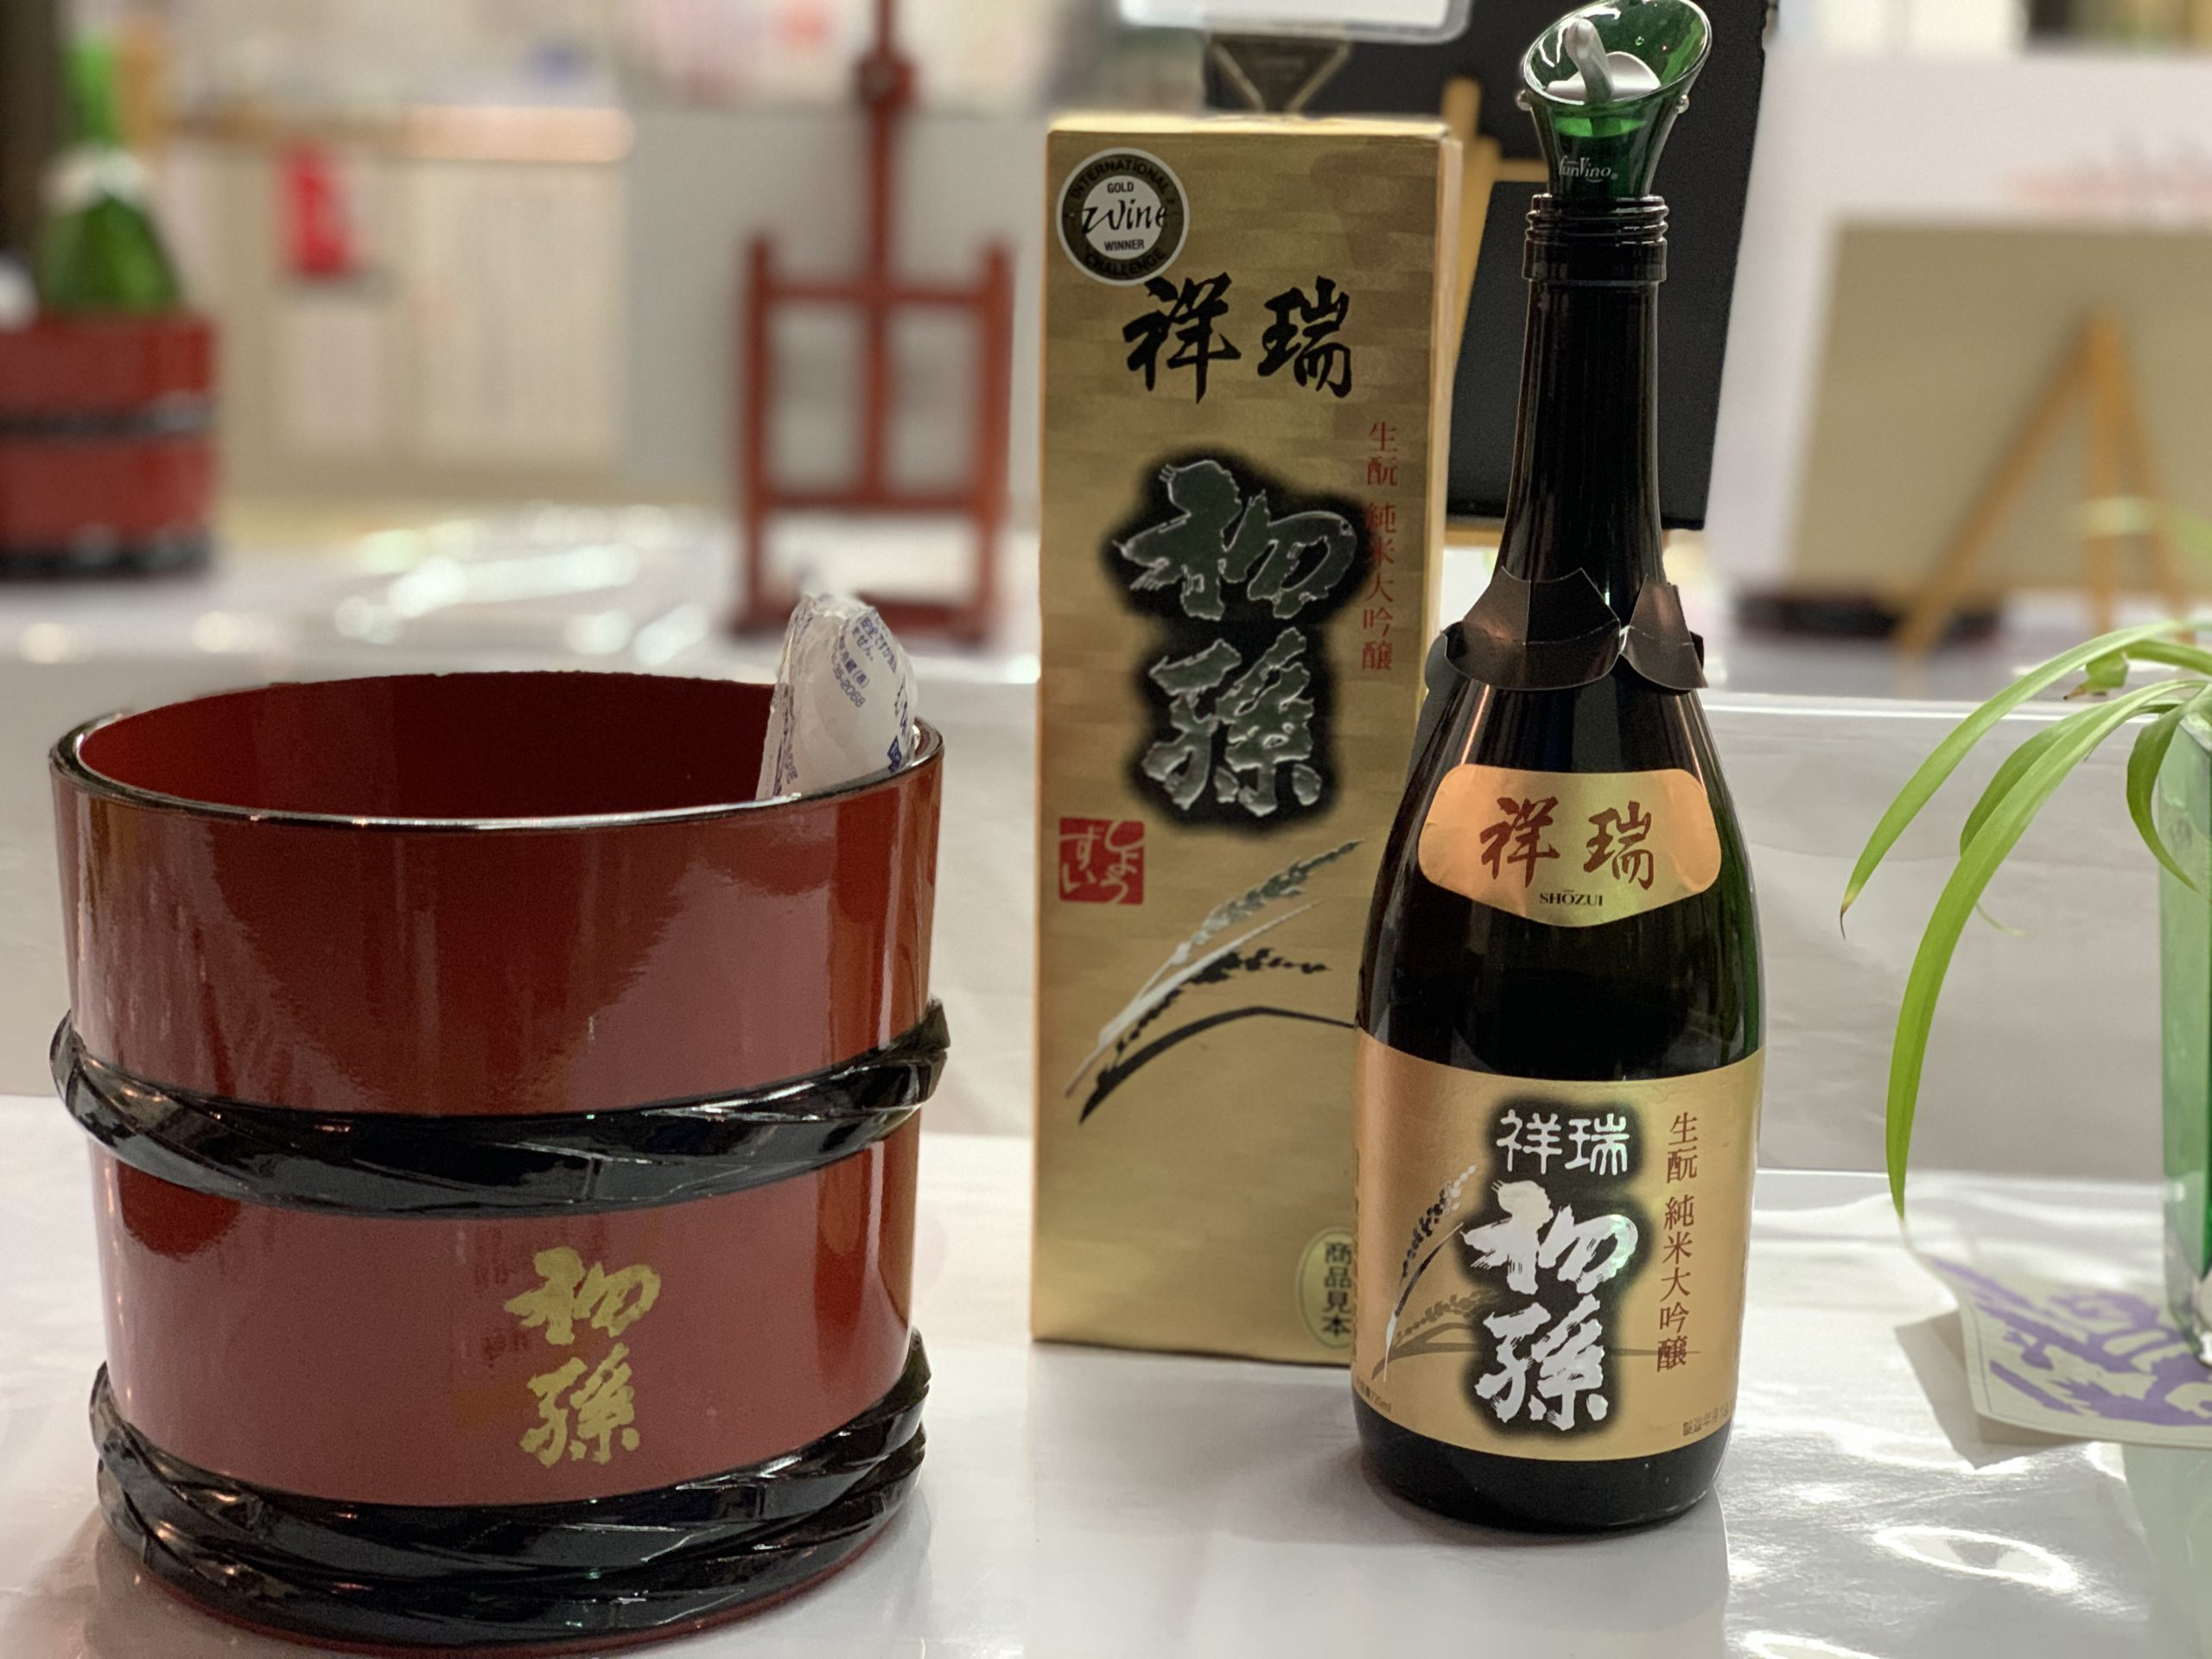 Tohoku Meijo Co.'s sake received six gold medals at the International Wine Challenge in 2018. Photo by Carrie Coolidge